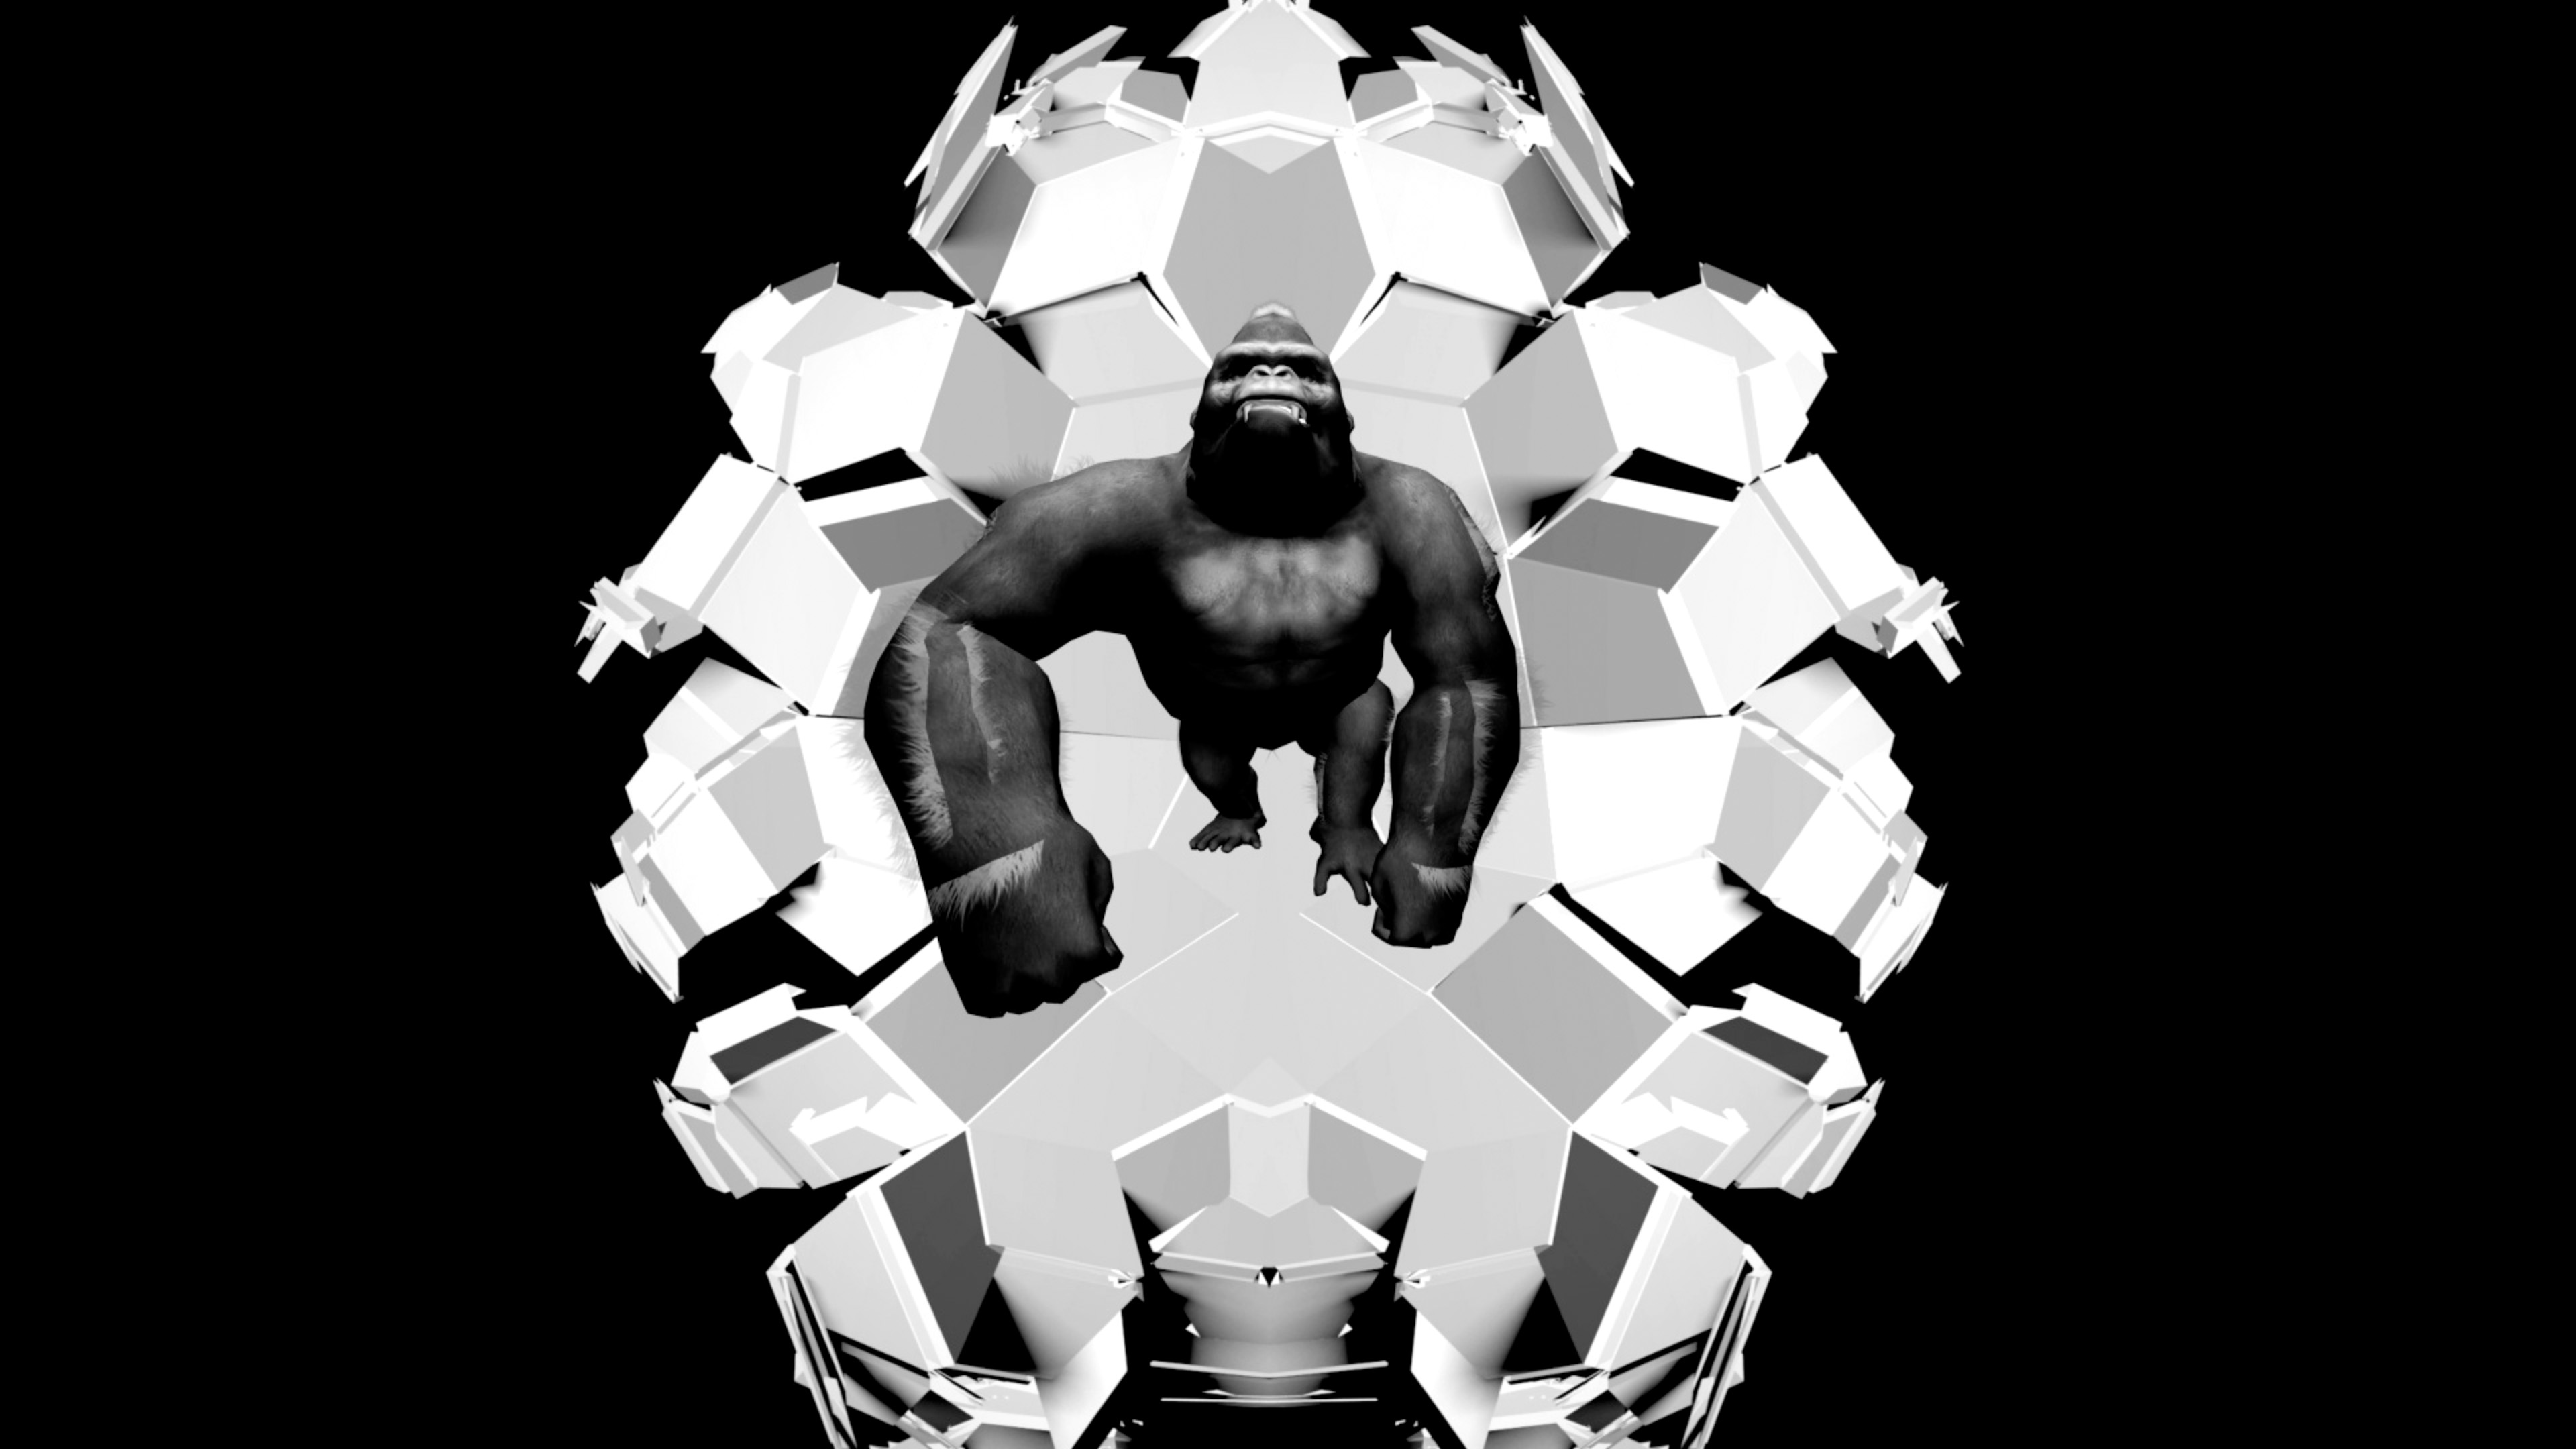 gorilla edm video animation 3d vj loop